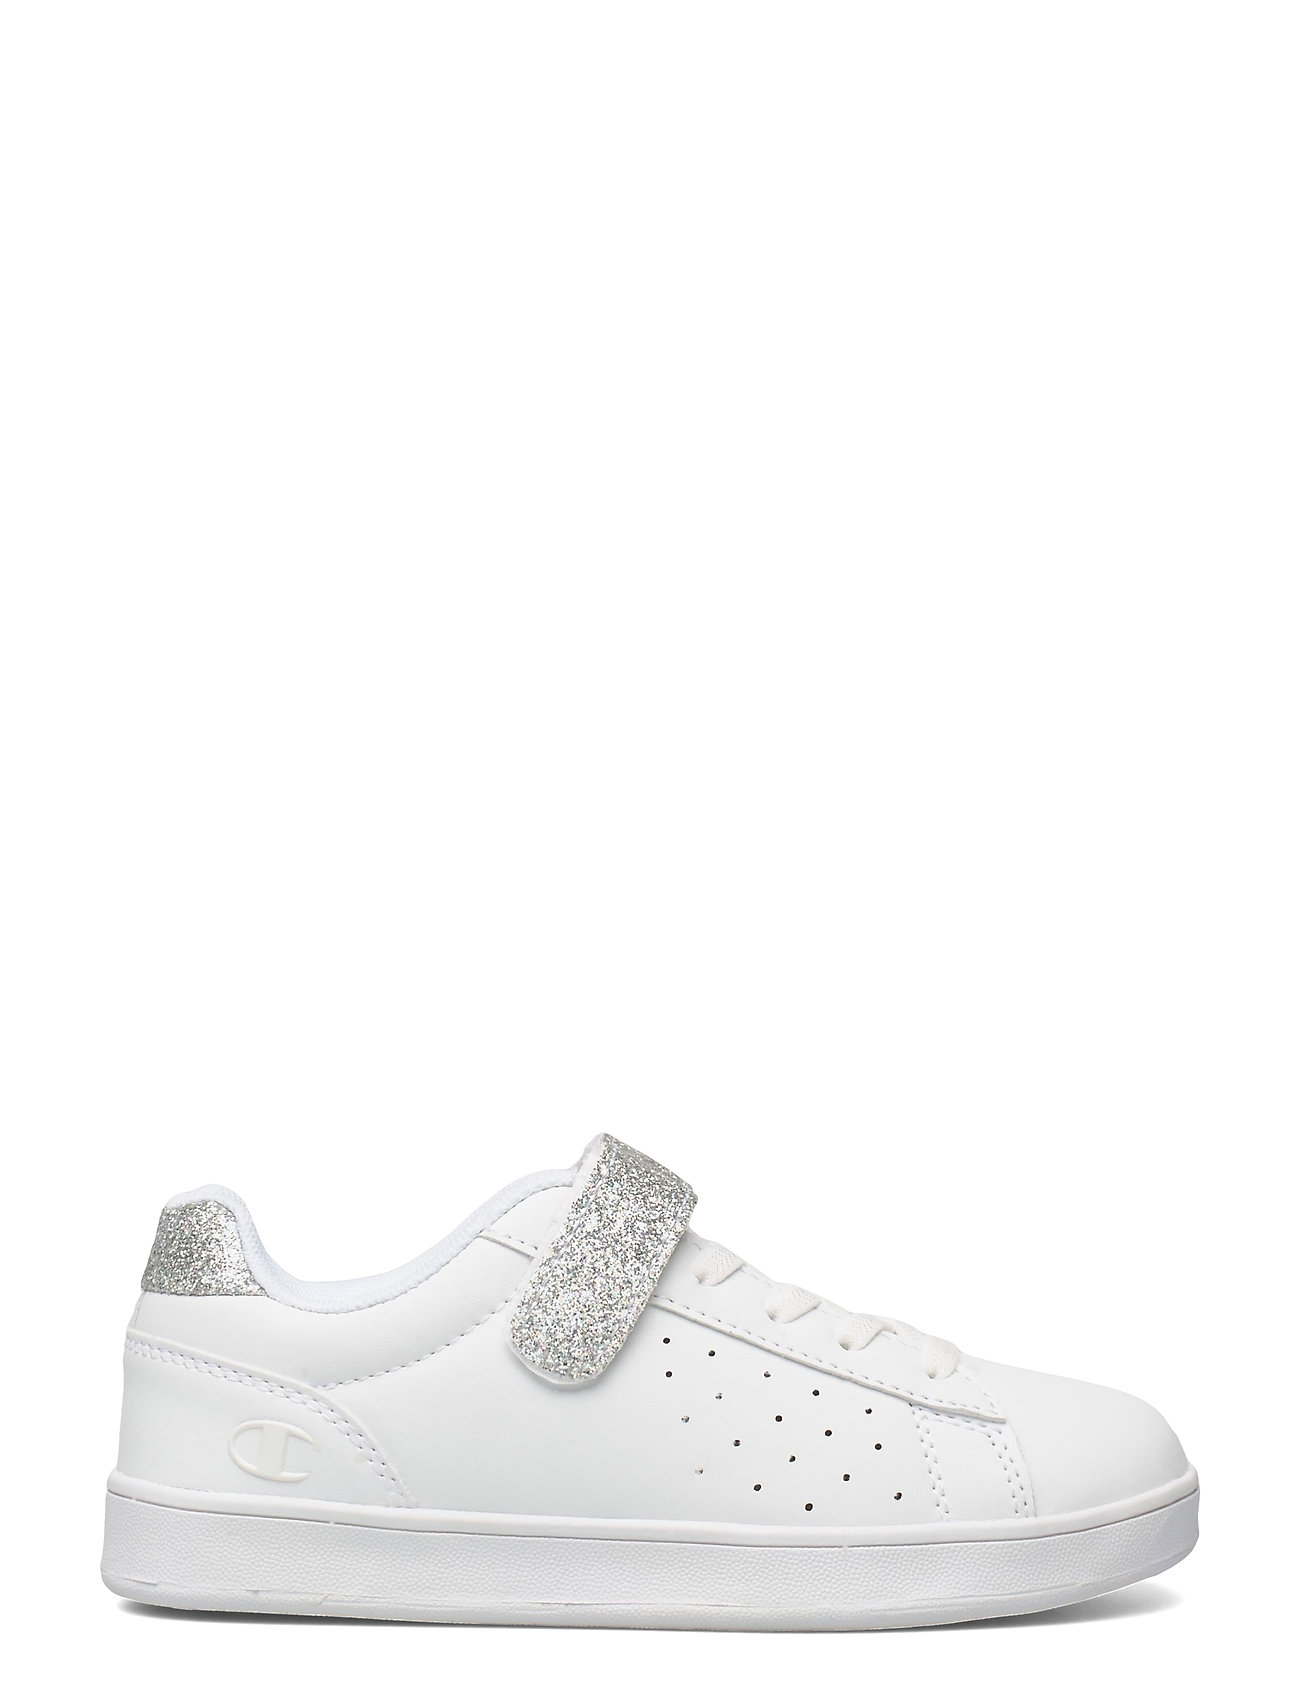 Image of Low Cut Shoe Alexia G Ps Low-top Sneakers Hvid Champion (3501119809)